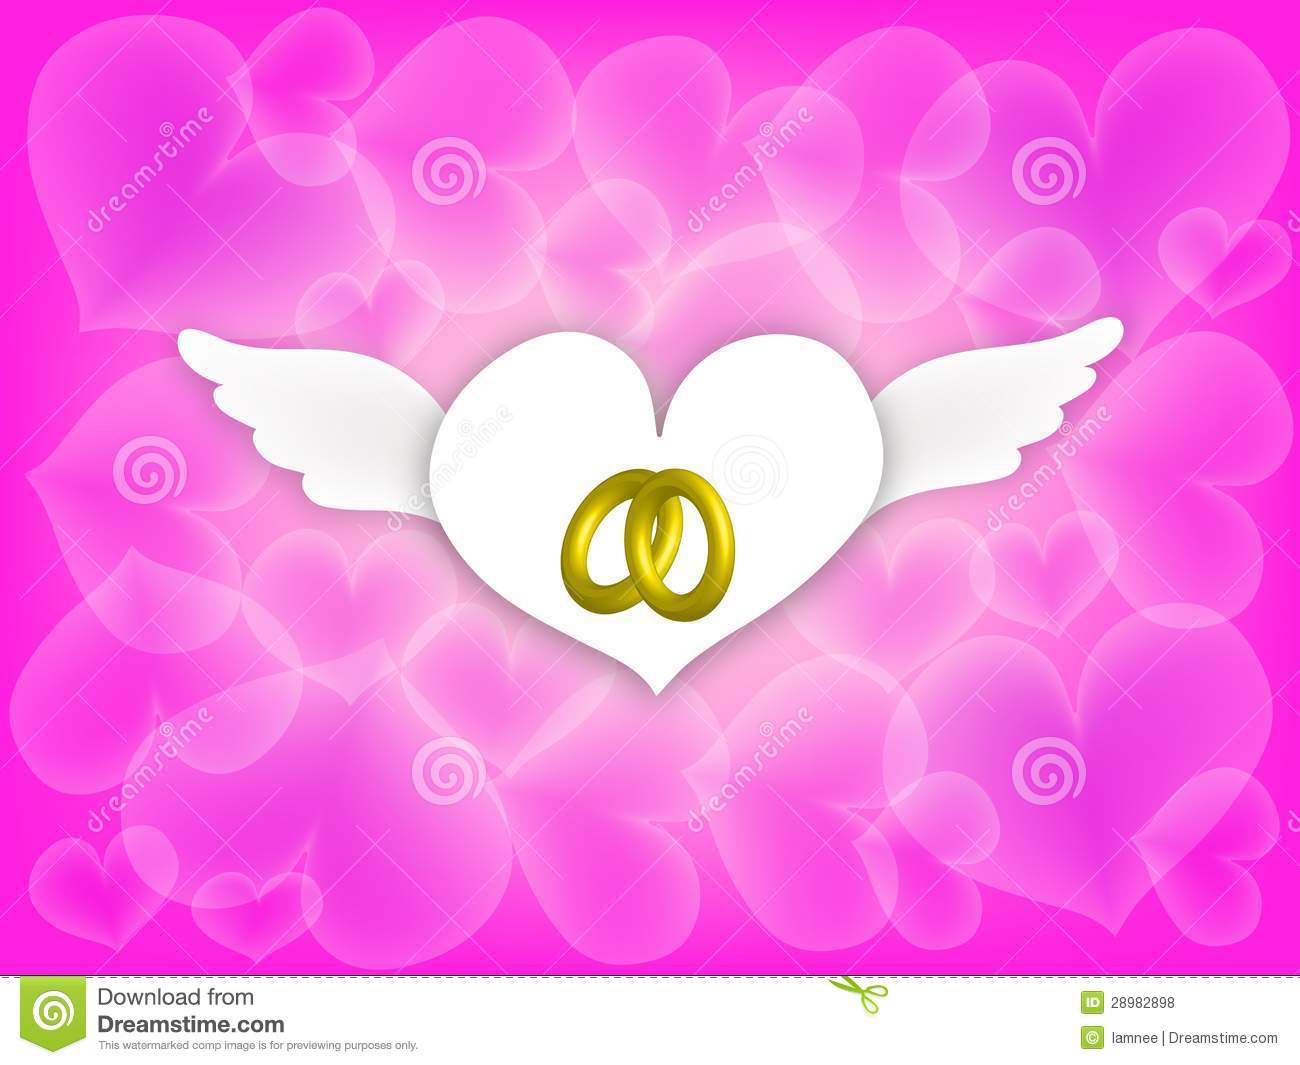 royalty free stock photos wedding rings angle hearth pink background image pink wedding rings Wedding Rings in Angle Hearth on Pink Background